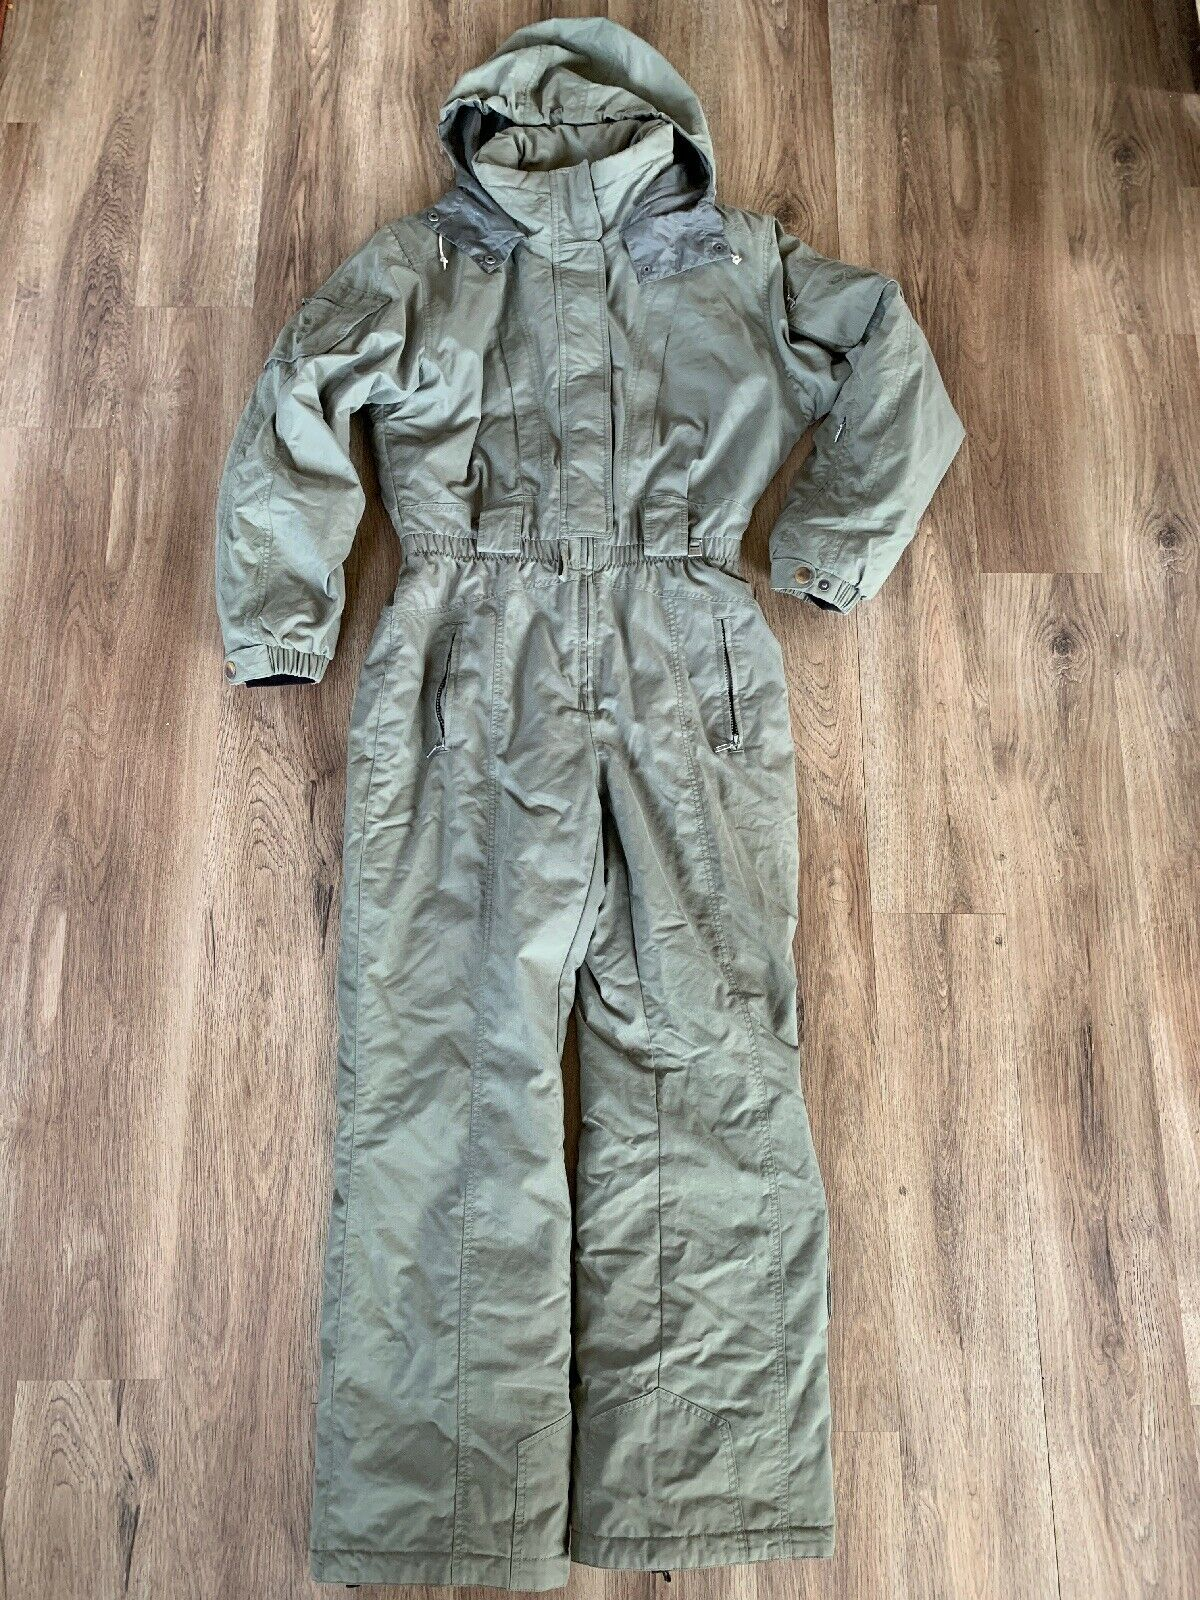 NILS Women's Green One Piece Insulated Ski Suit Snowsuit Size M L VGUC